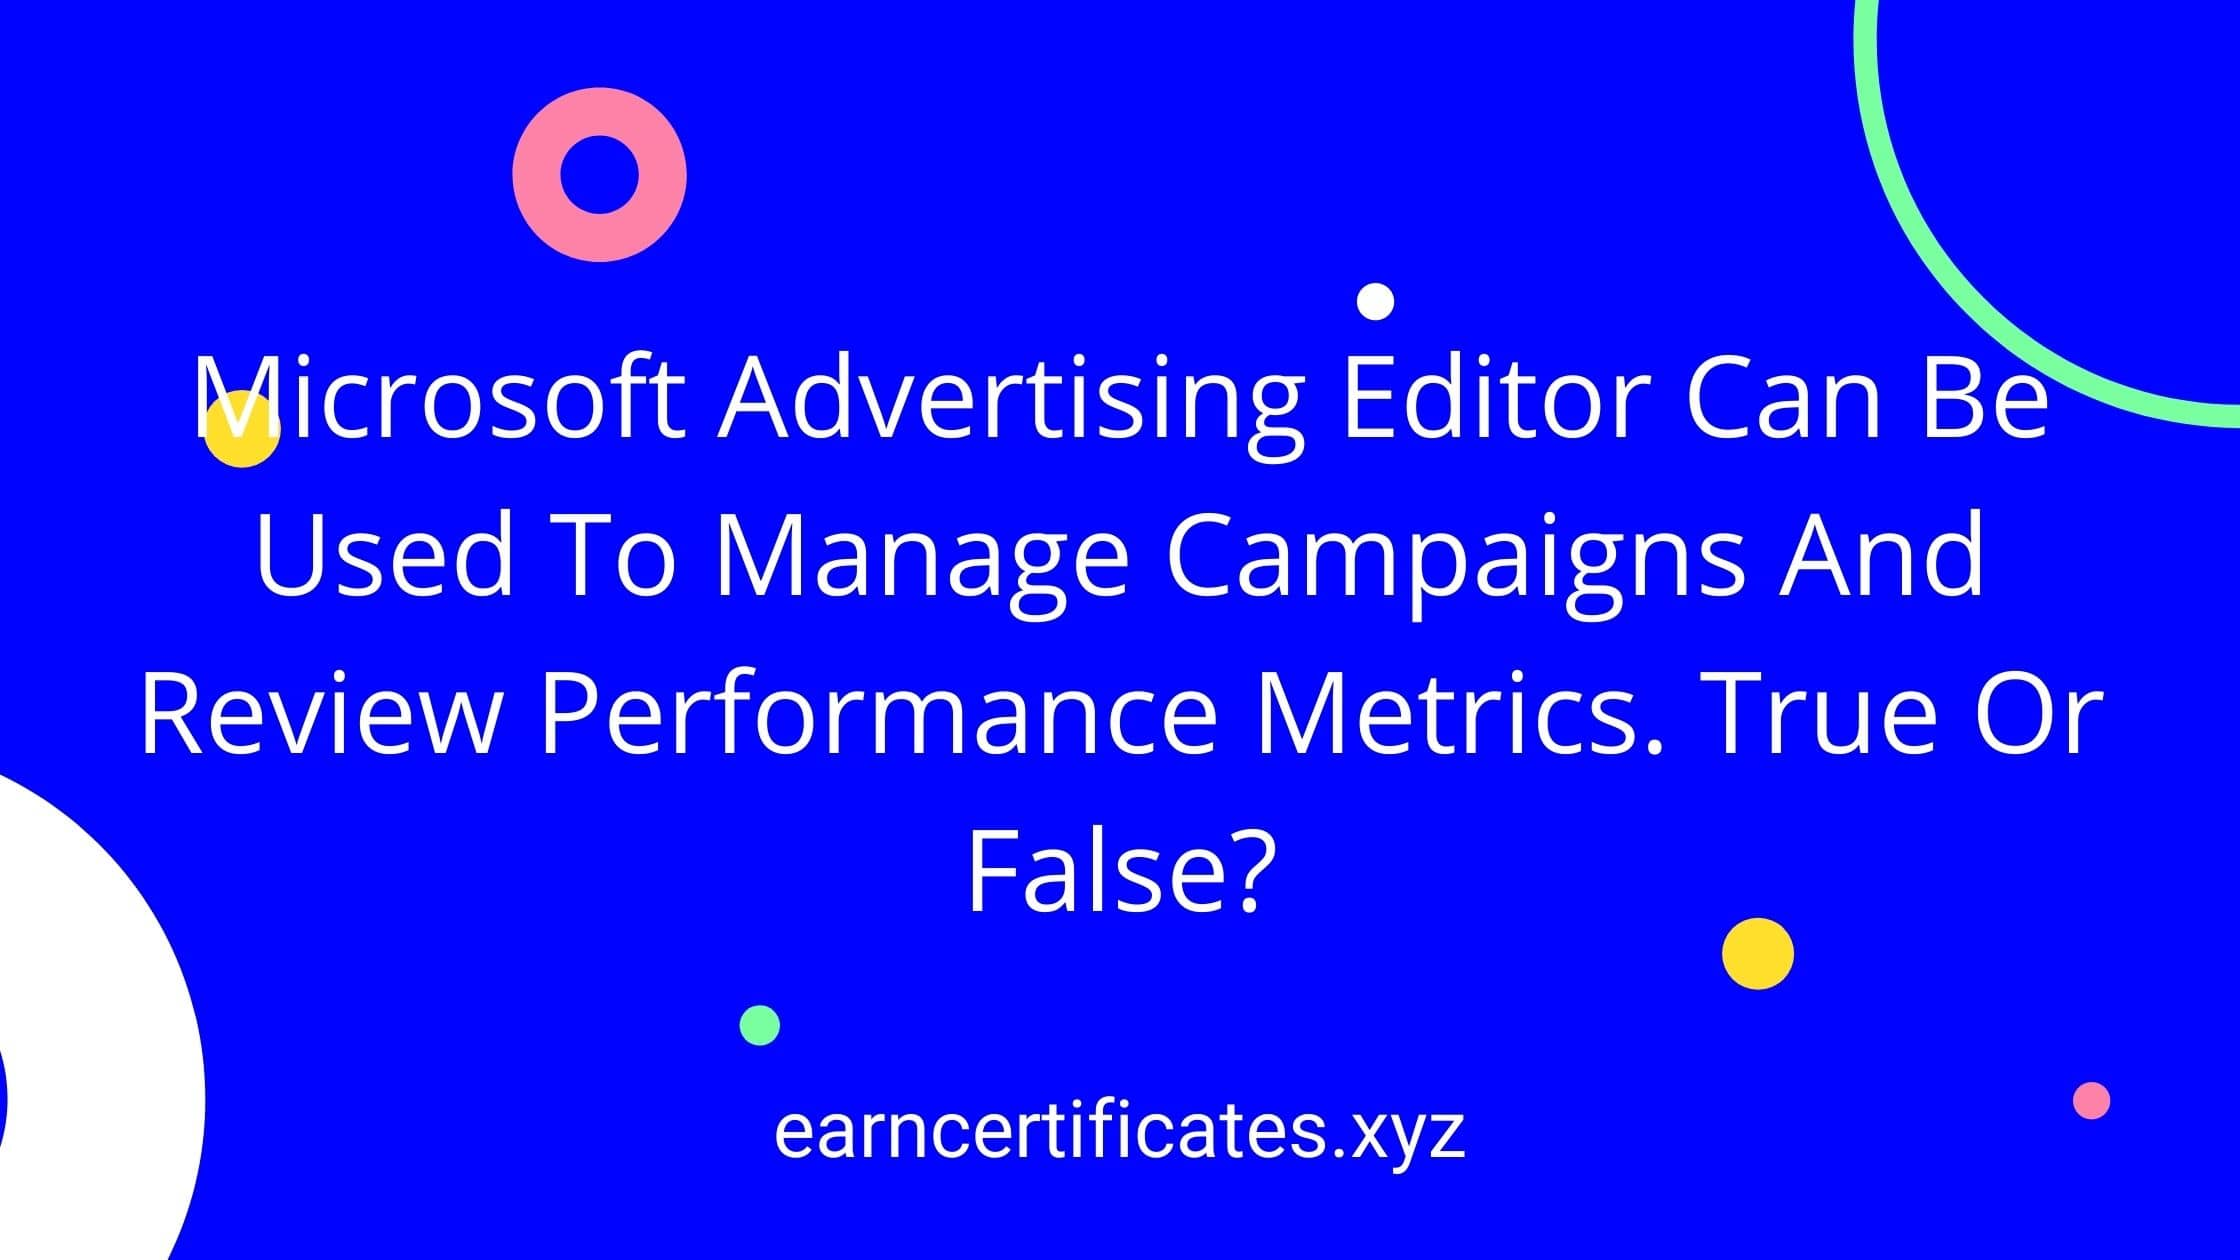 Microsoft Advertising Editor Can Be Used To Manage Campaigns And Review Performance Metrics. True Or False?